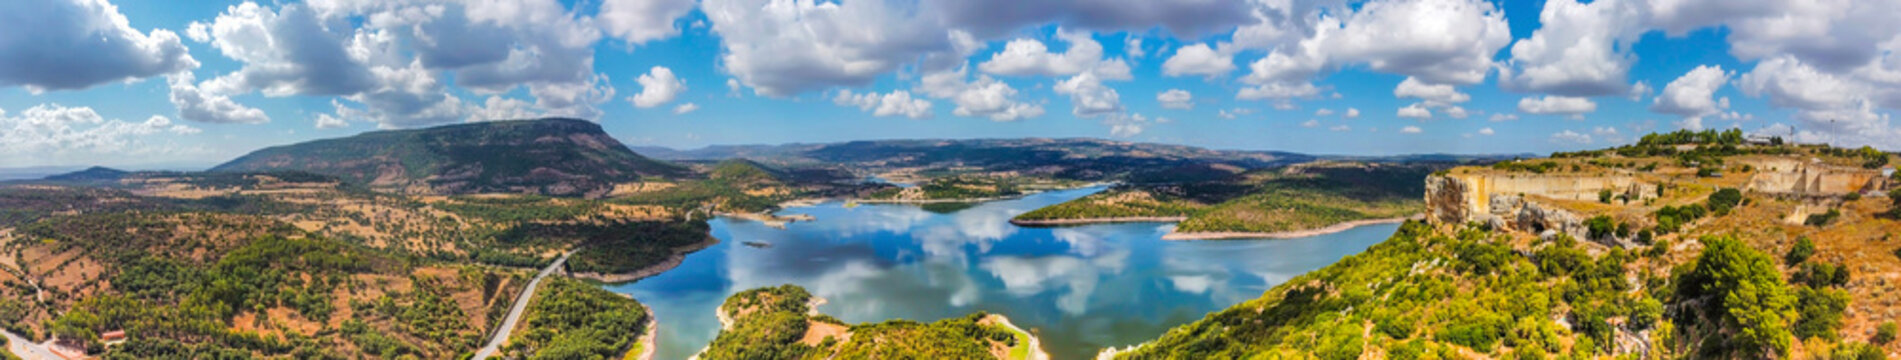 Aerial view of Lake Temo under a cloudy sky